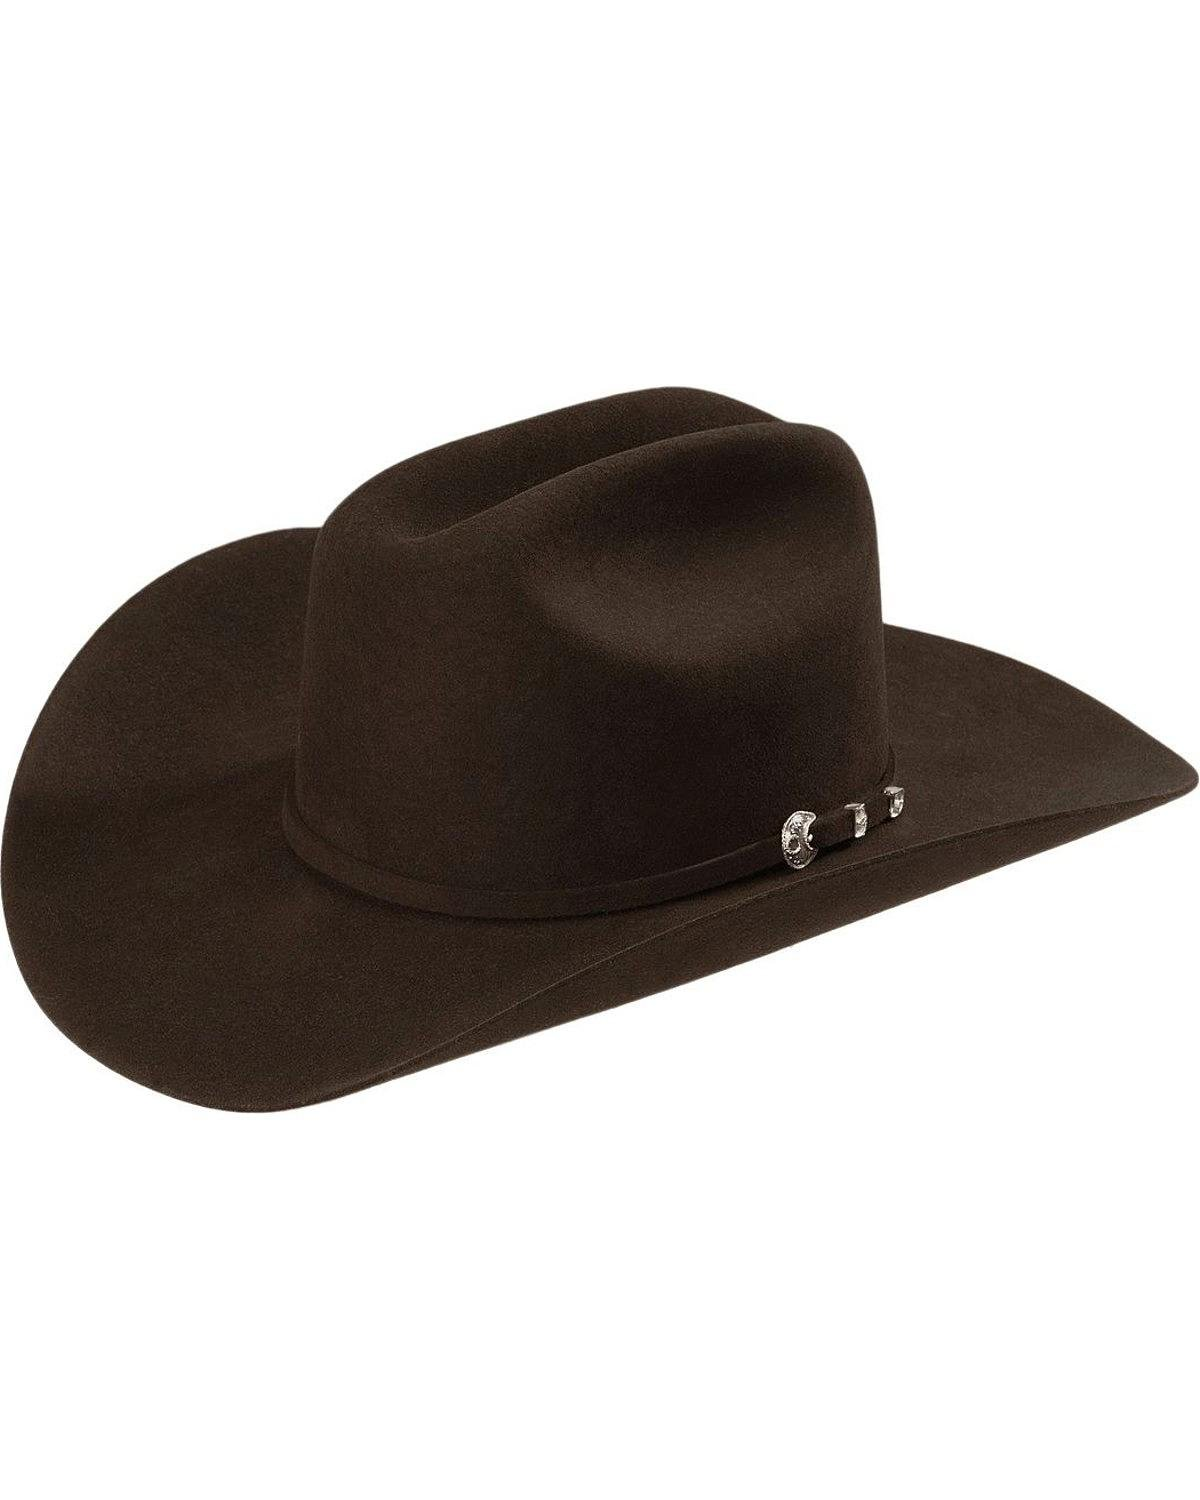 Stetson Men's 4X Corral Buffalo Felt Cowboy Hat Chocolate 7 5/8